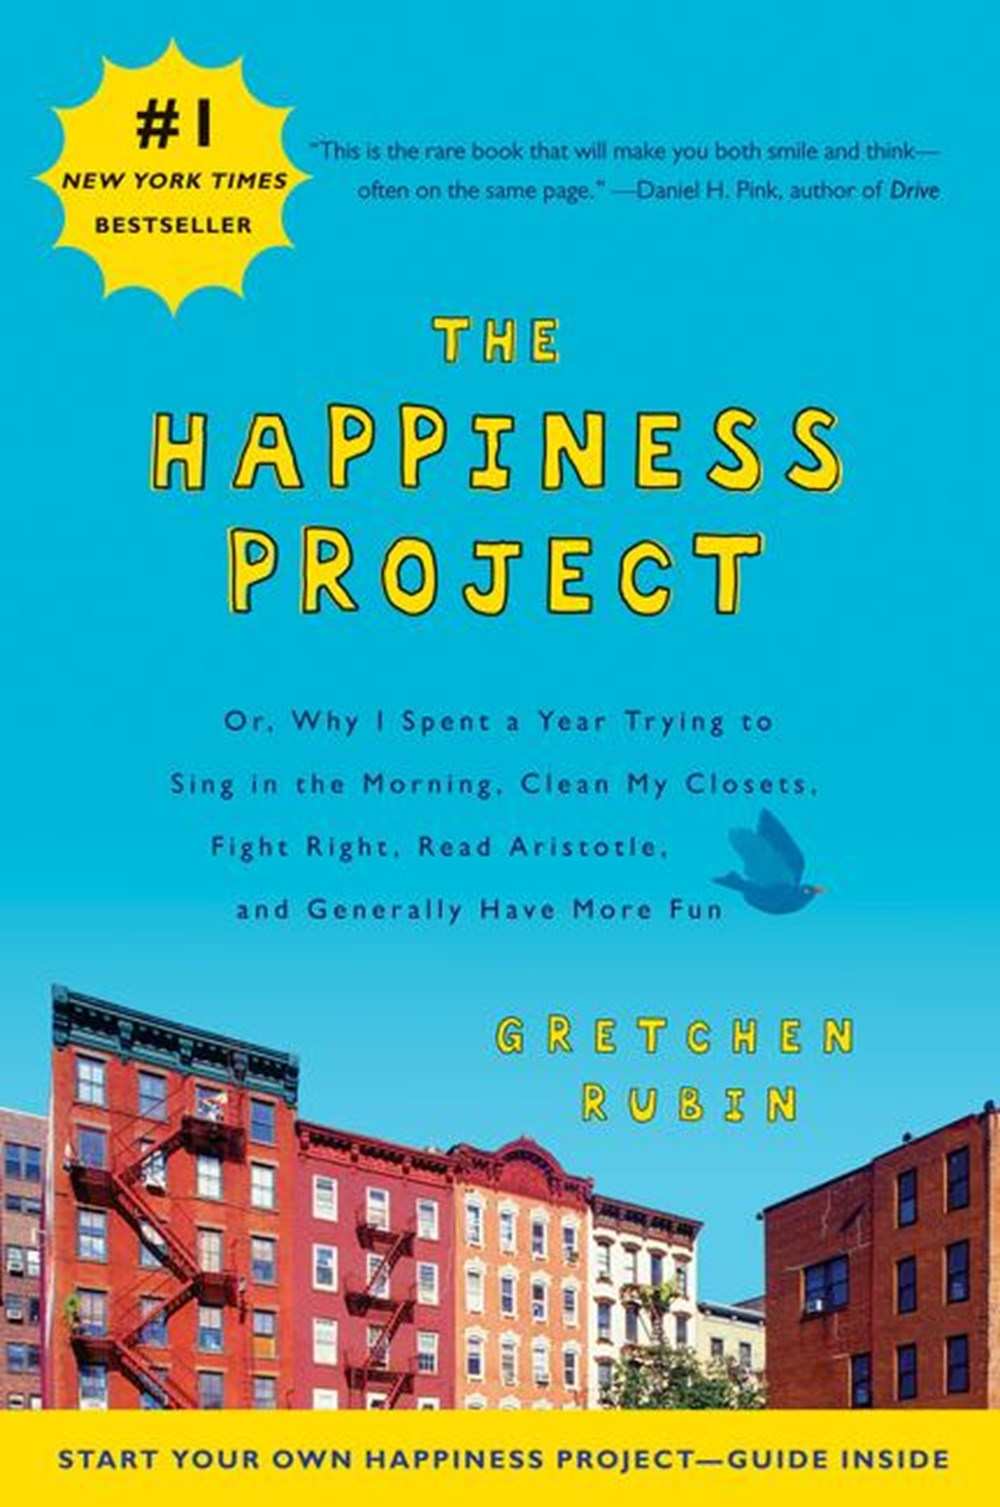 Happiness Project Or, Why I Spent a Year Trying to Sing in the Morning, Clean My Closets, Fight Righ